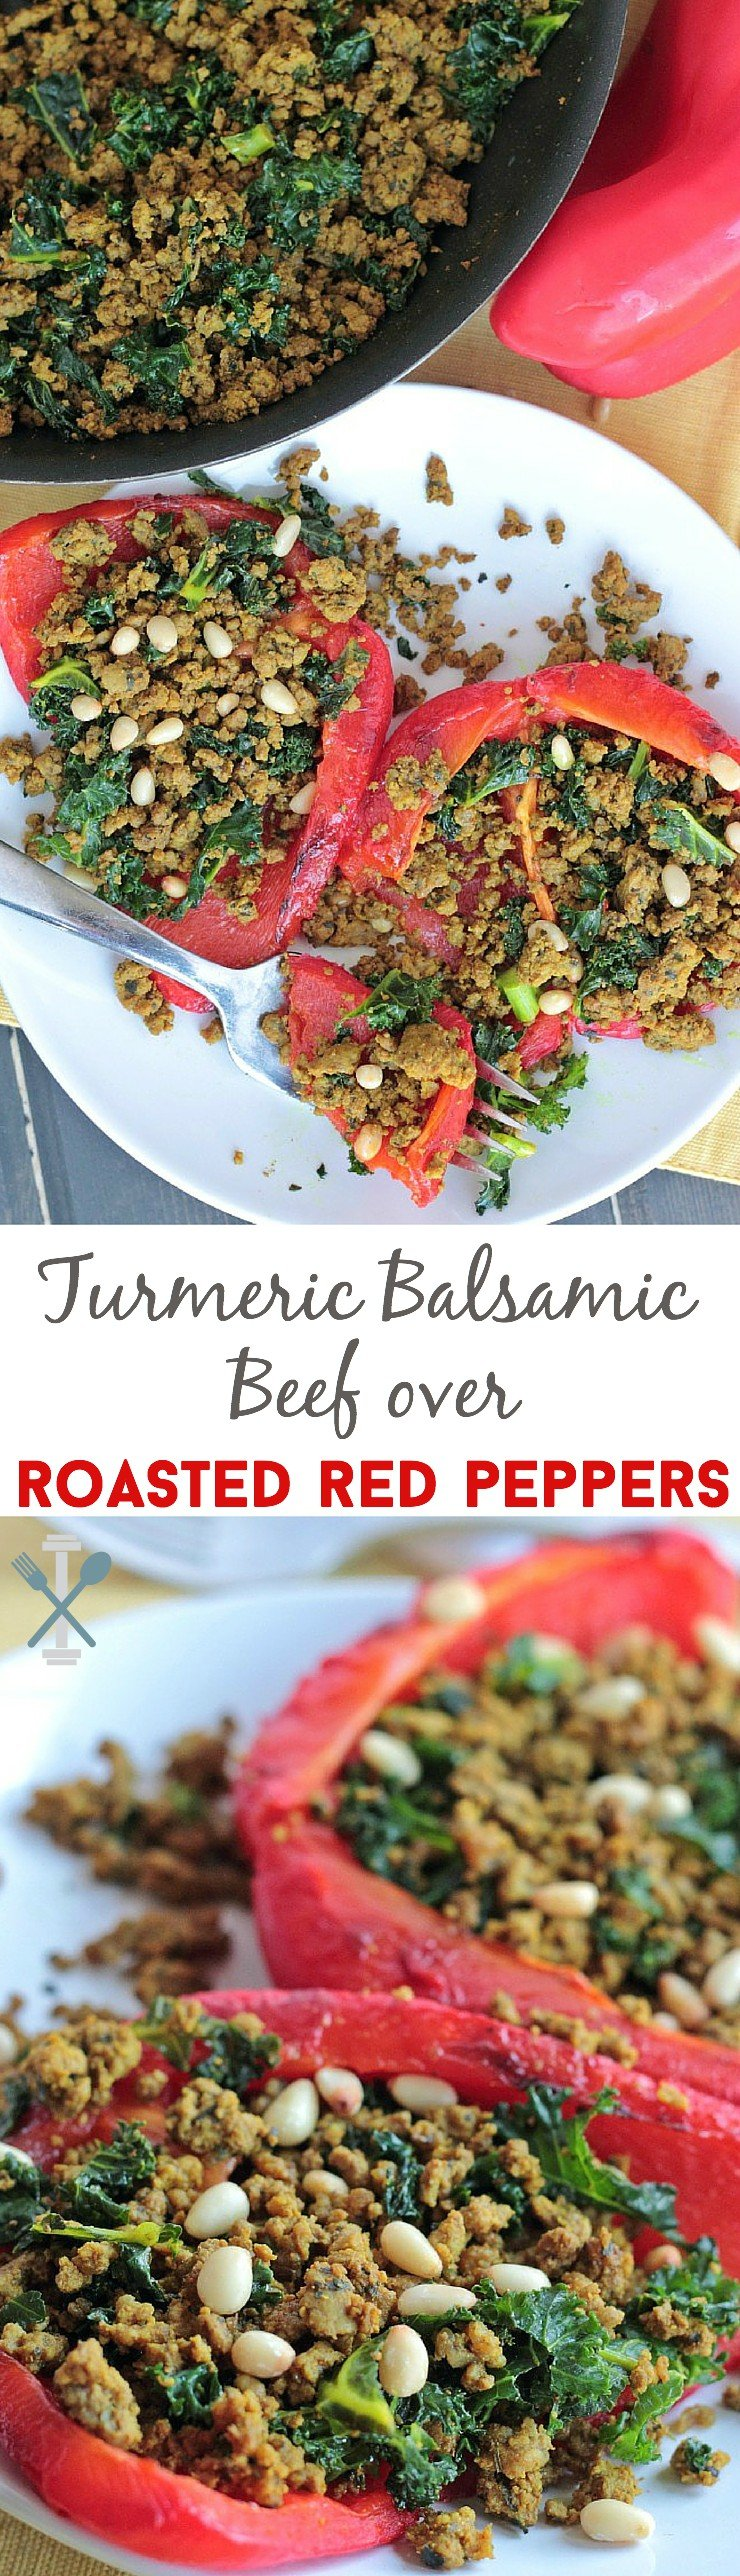 Whole30 Turmeric Balsamic Ground Beef over Roasted Red Peppers. The most amazing, flavor-packed dinner. Seriously, it's a-mazing! And so easy to make - a 20 minute dinner from prep to plated.